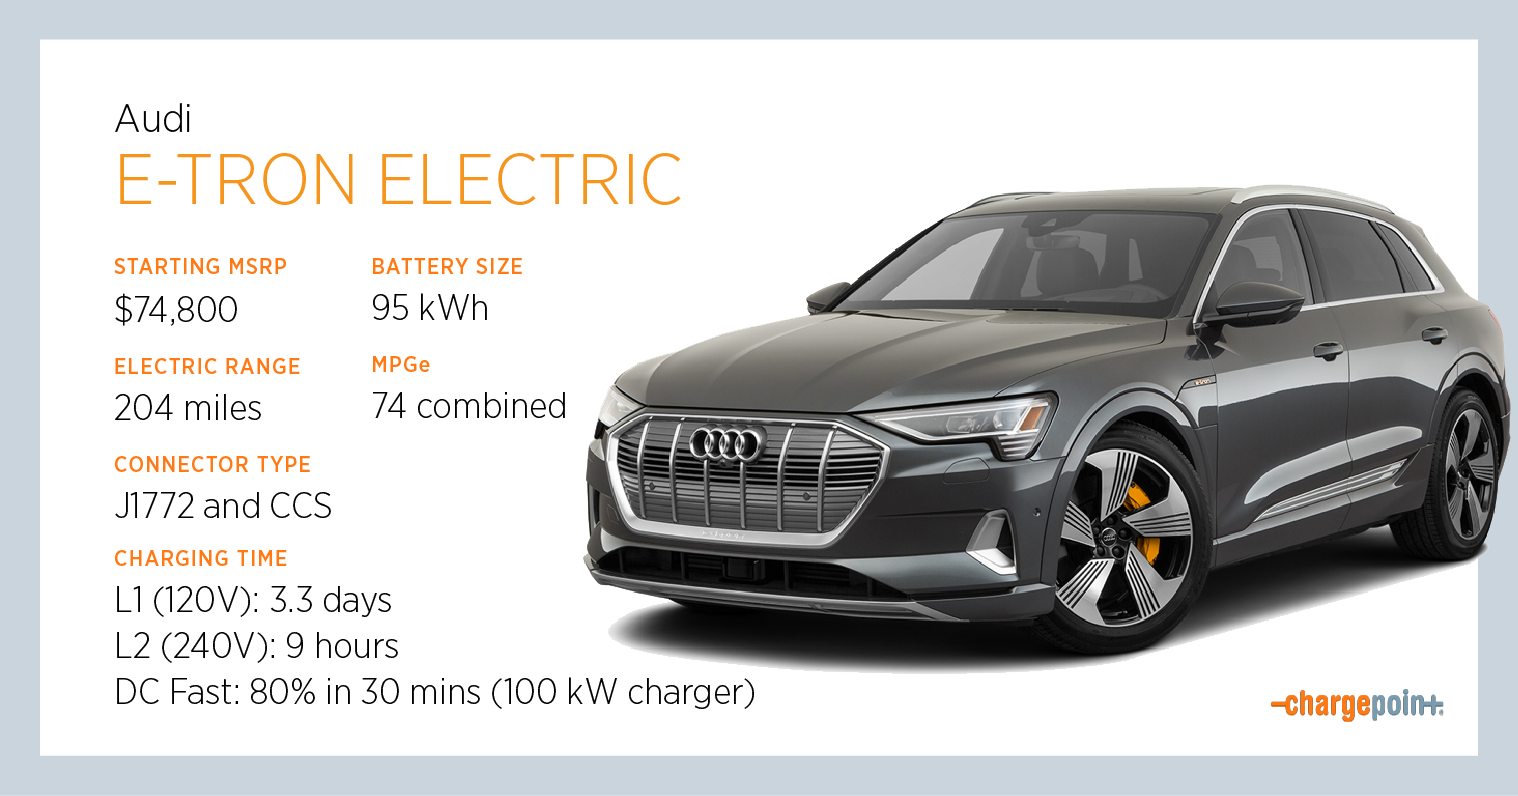 Everything You Need To Know About Charging The Audi E Tron Suv Chargepoint,Mid Century Modern King Bedroom Set